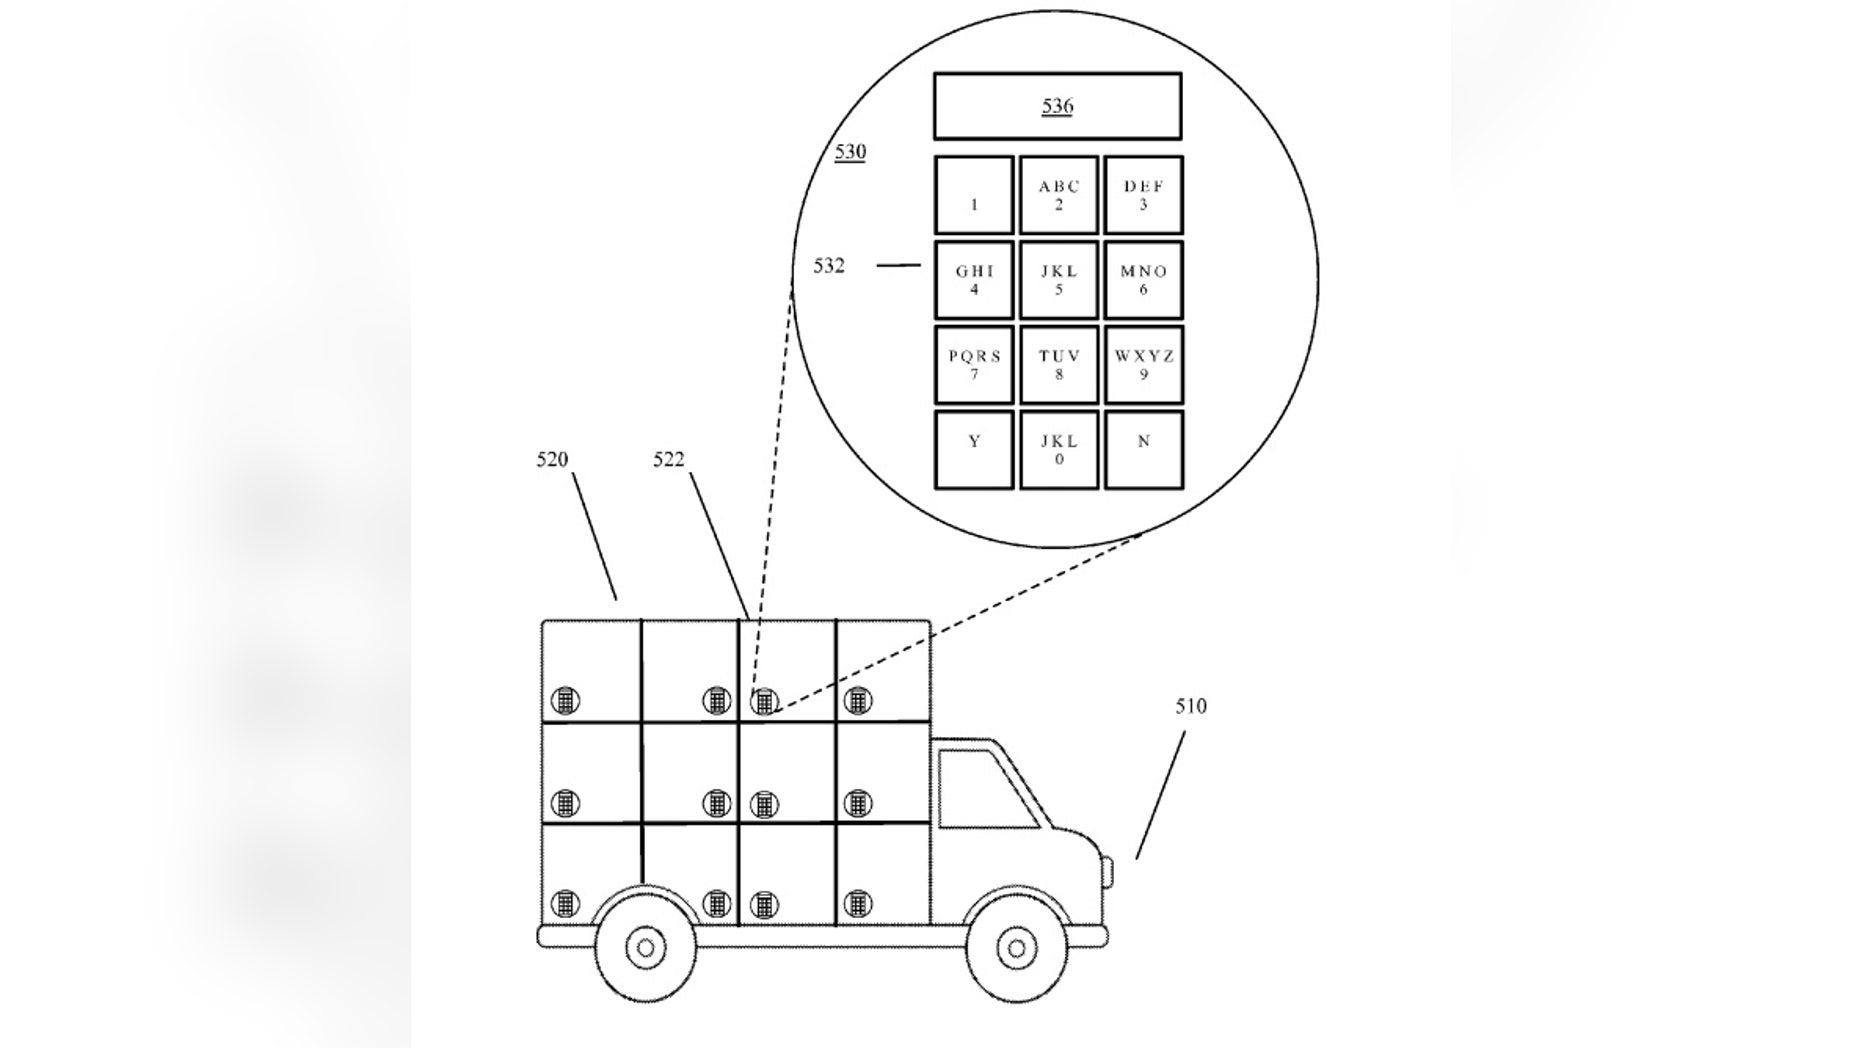 (Screenshot from Google patent on www.uspto.gov - US Patent and Trademark Office)